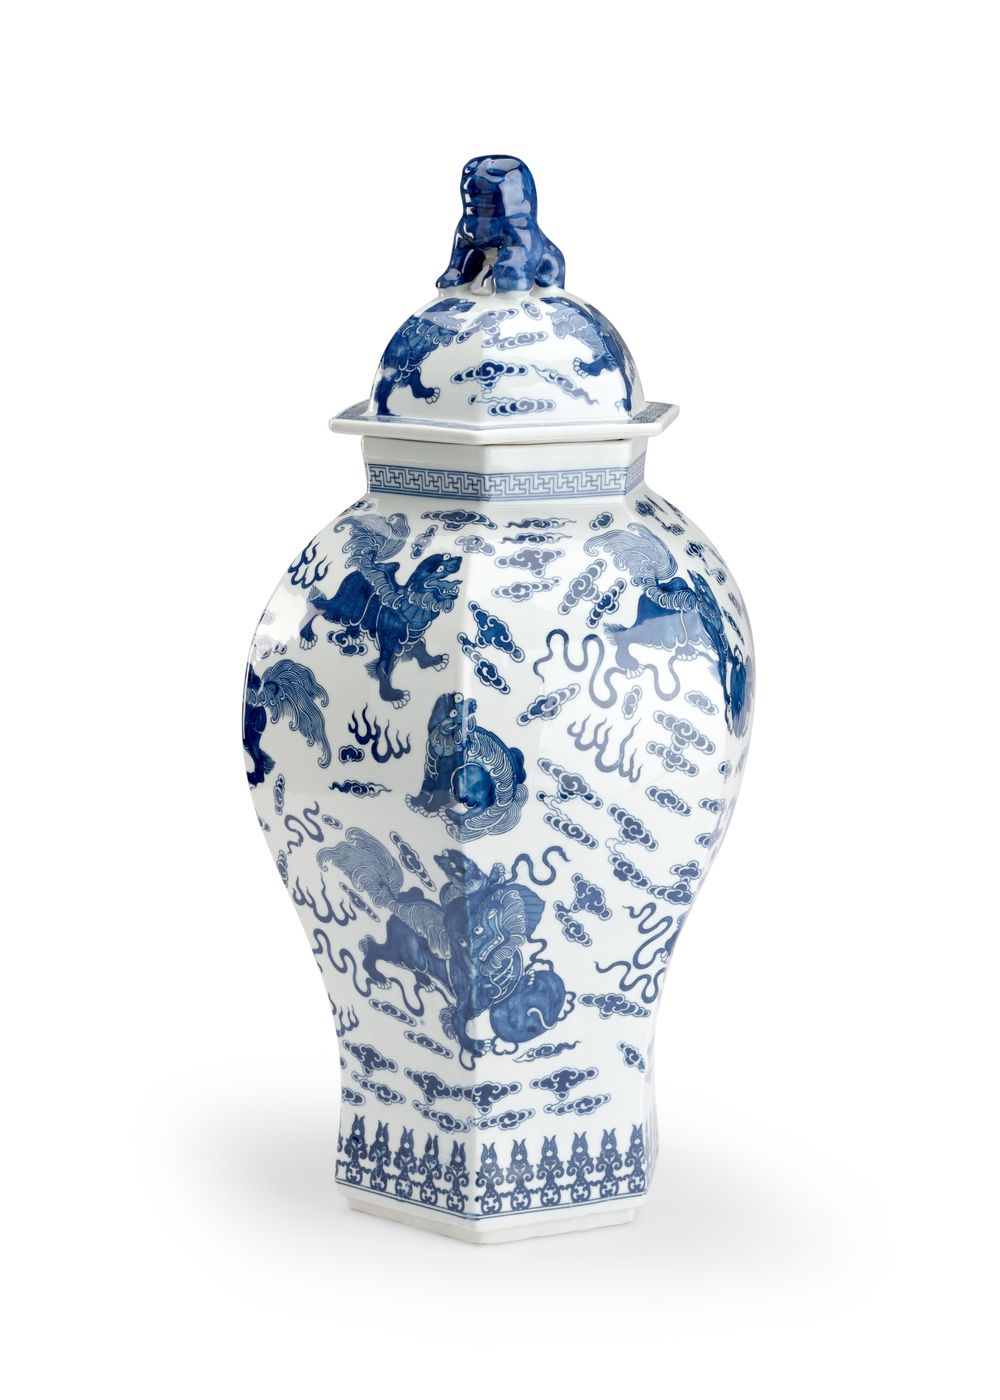 Chelsea House - Qing Covered Urn